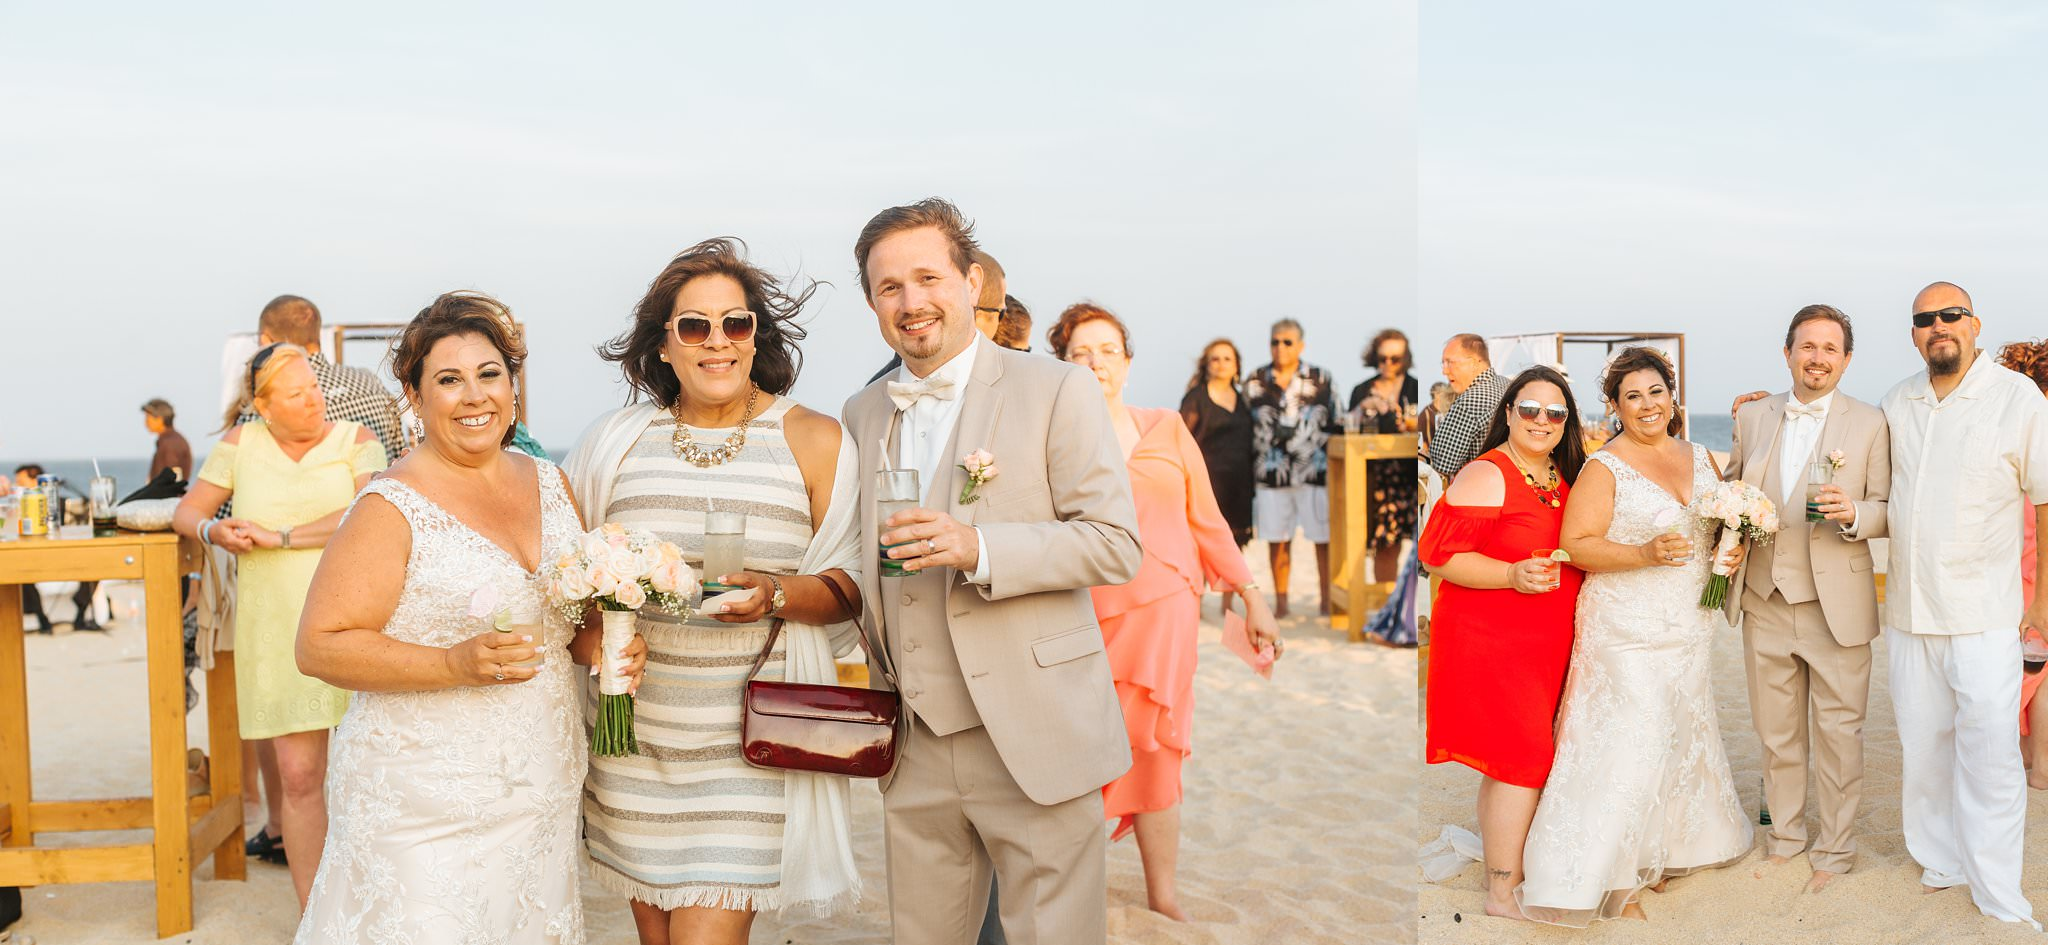 Bride and Groom celebrate on the beach with guests during cocktail hour - https://brittneyhannonphotography.com